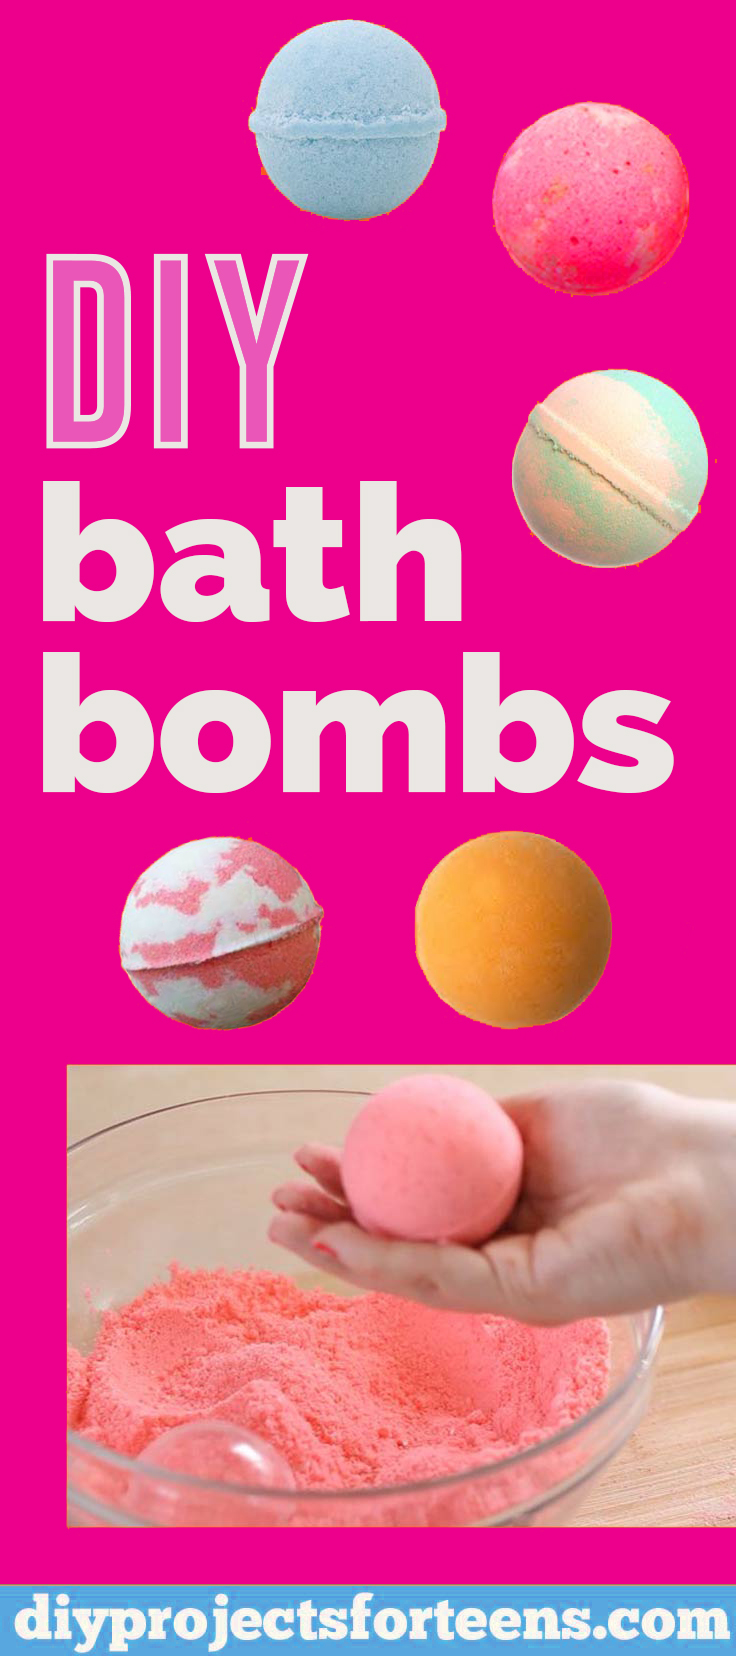 How To Make DIY Lush Bath Bombs